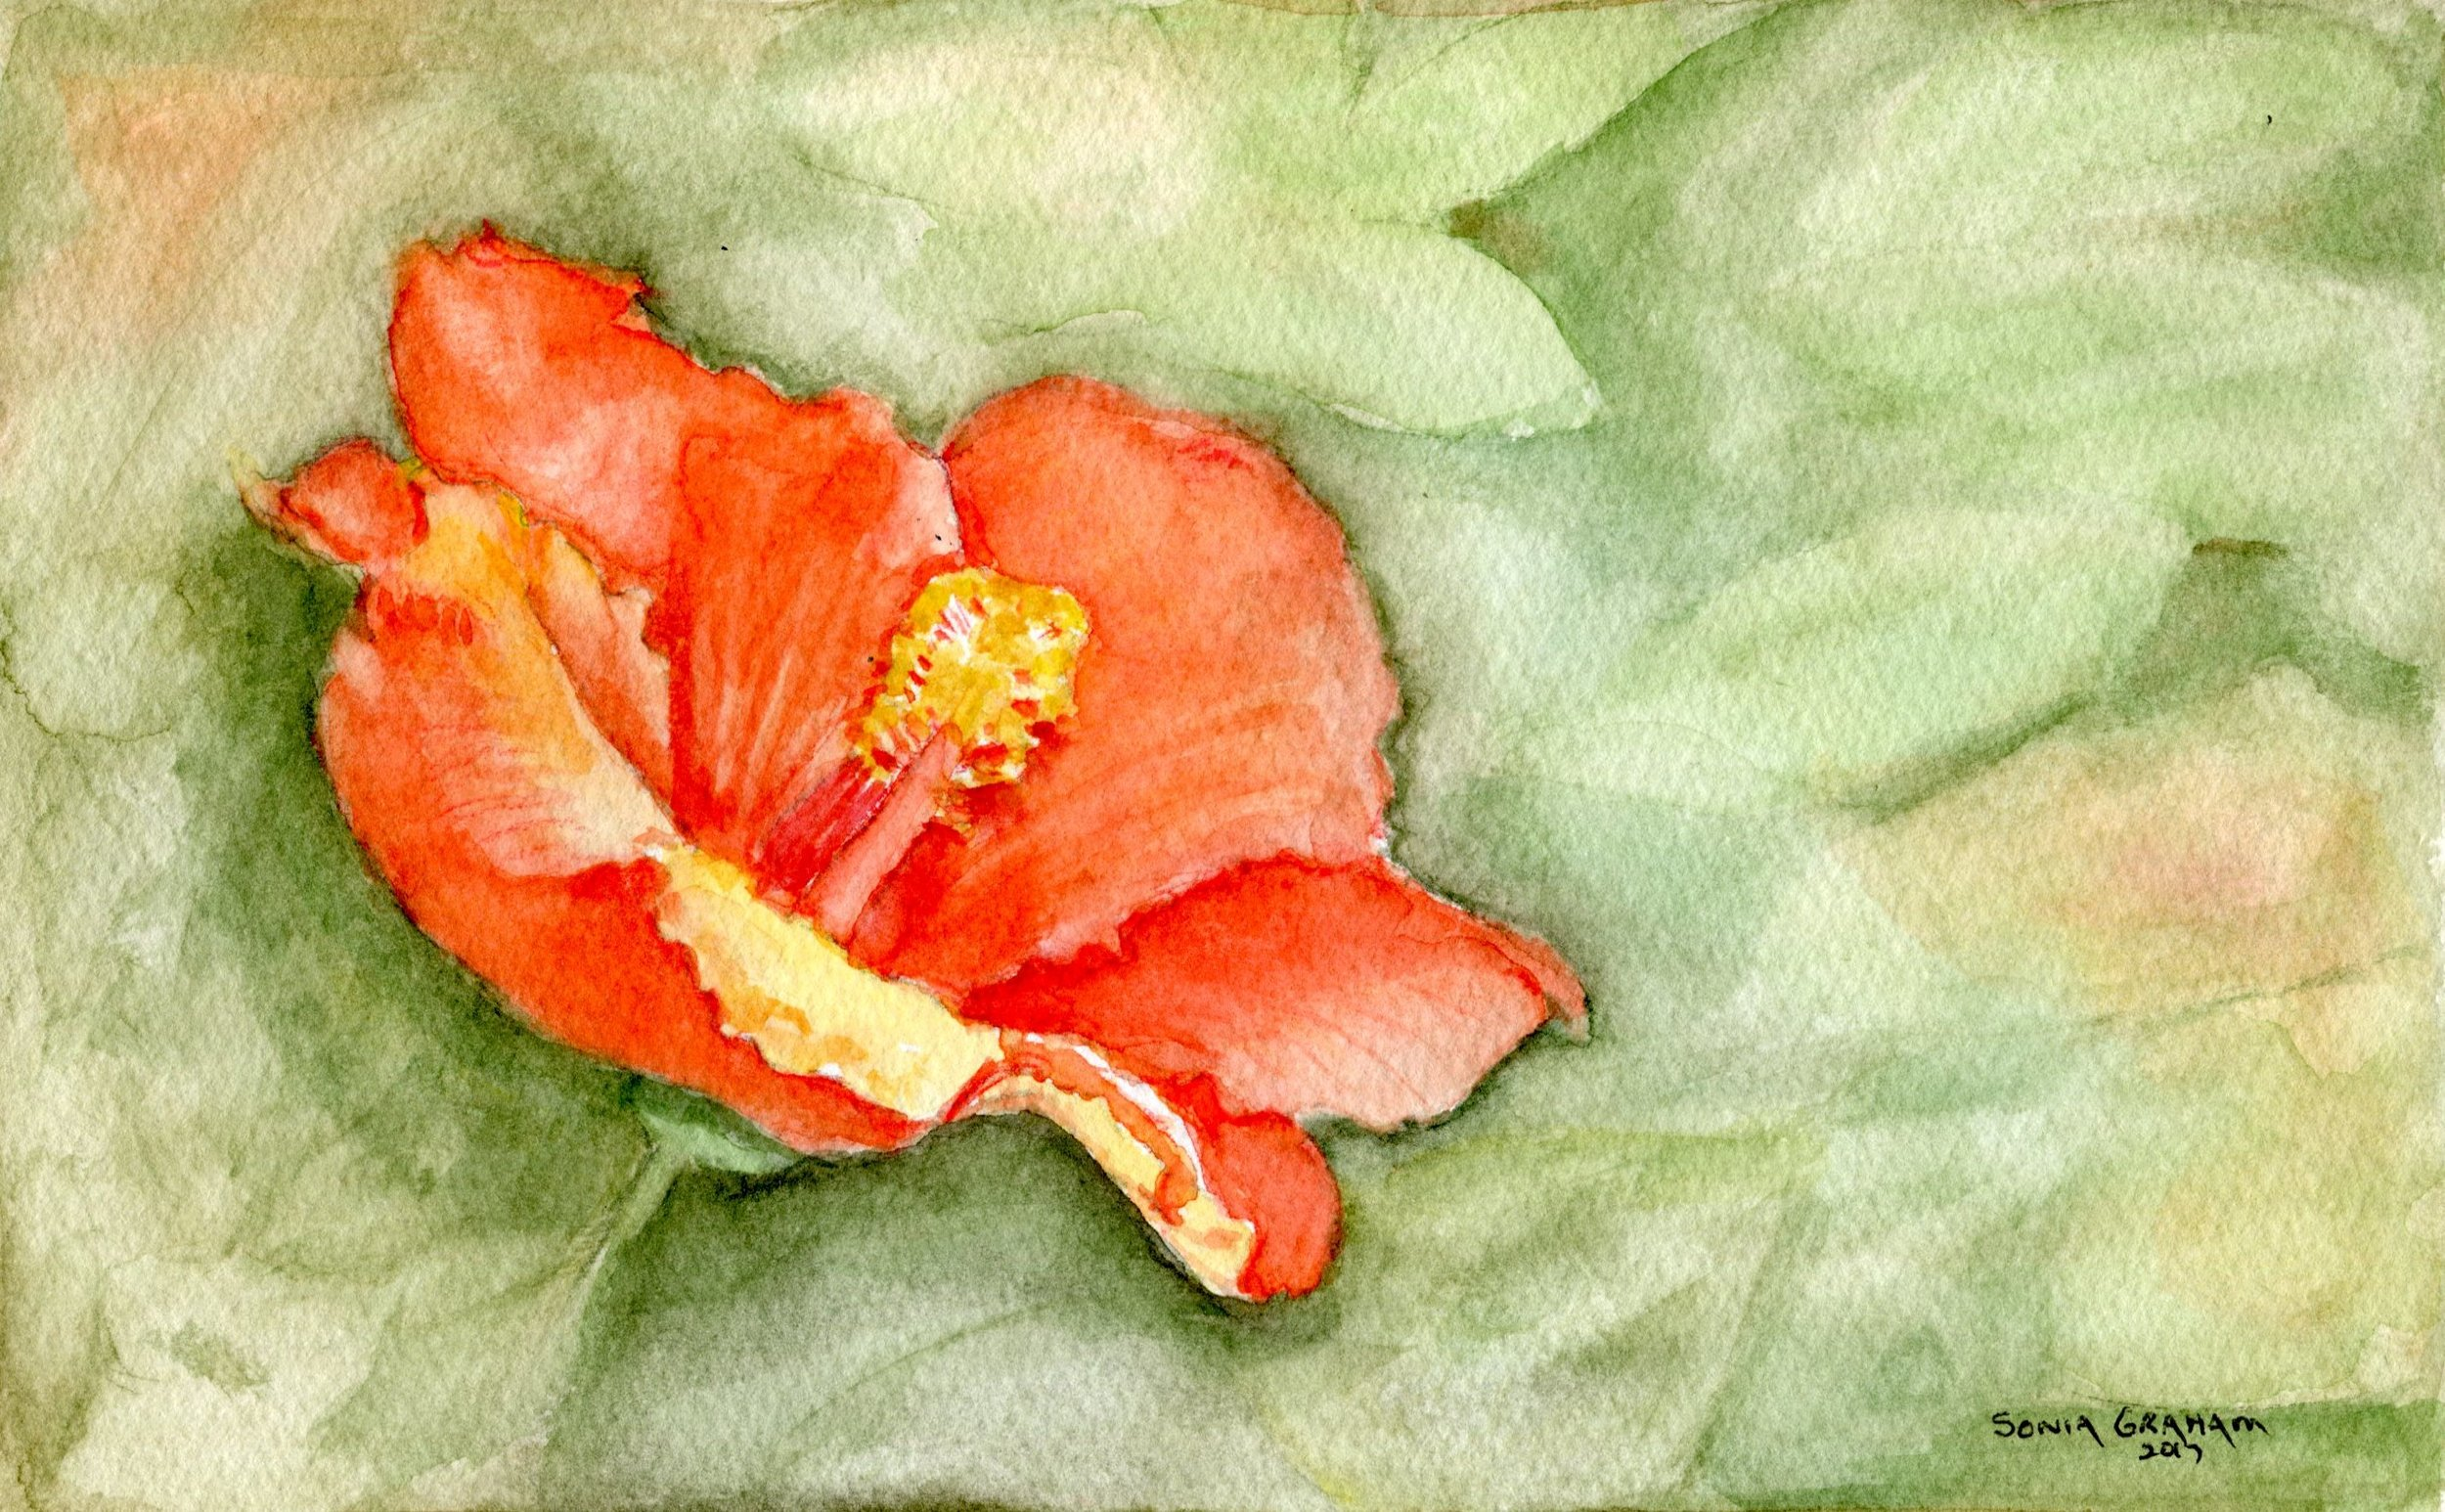 10B SONIA GRAHAM, HIBISCUS, WATERCOLOUR ON PAPER